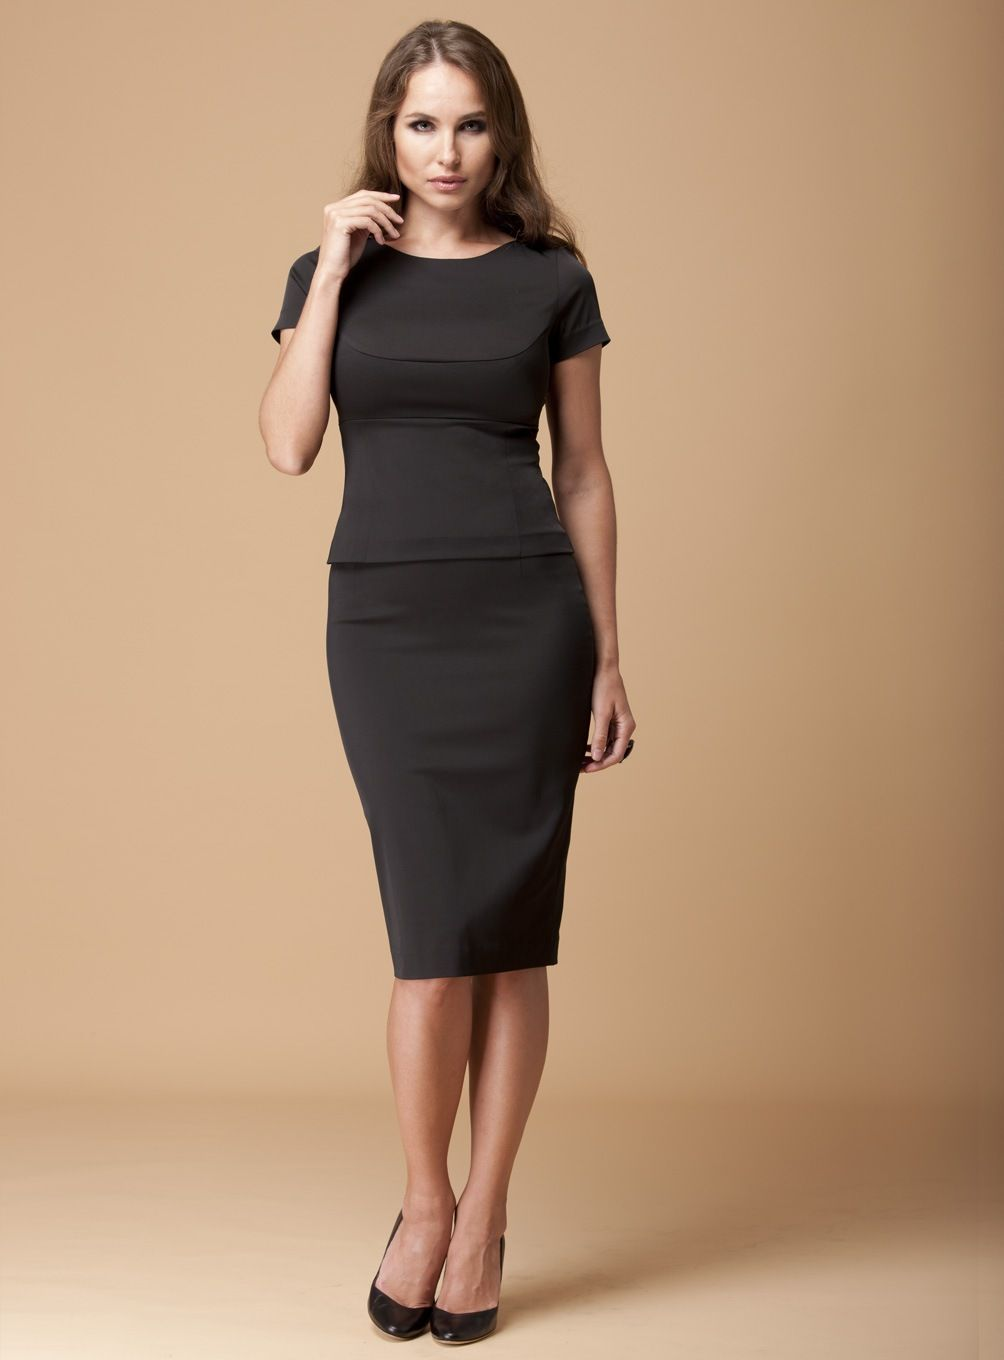 Clothes for bigger women